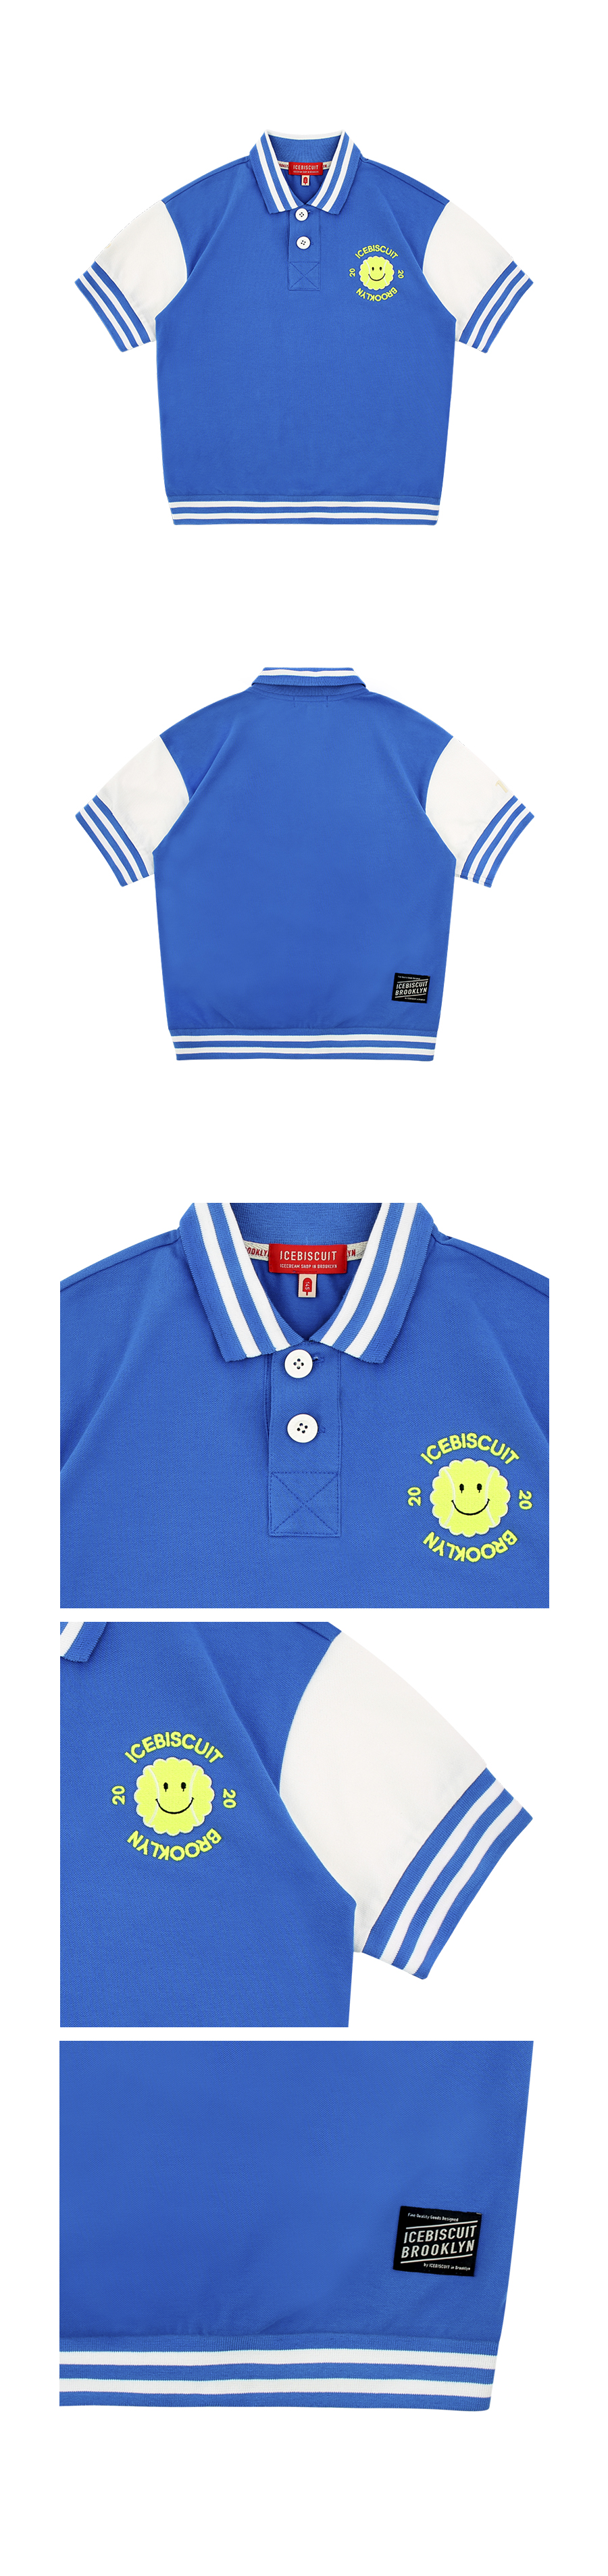 Tennis smile color block pique polo shirt 상세 이미지